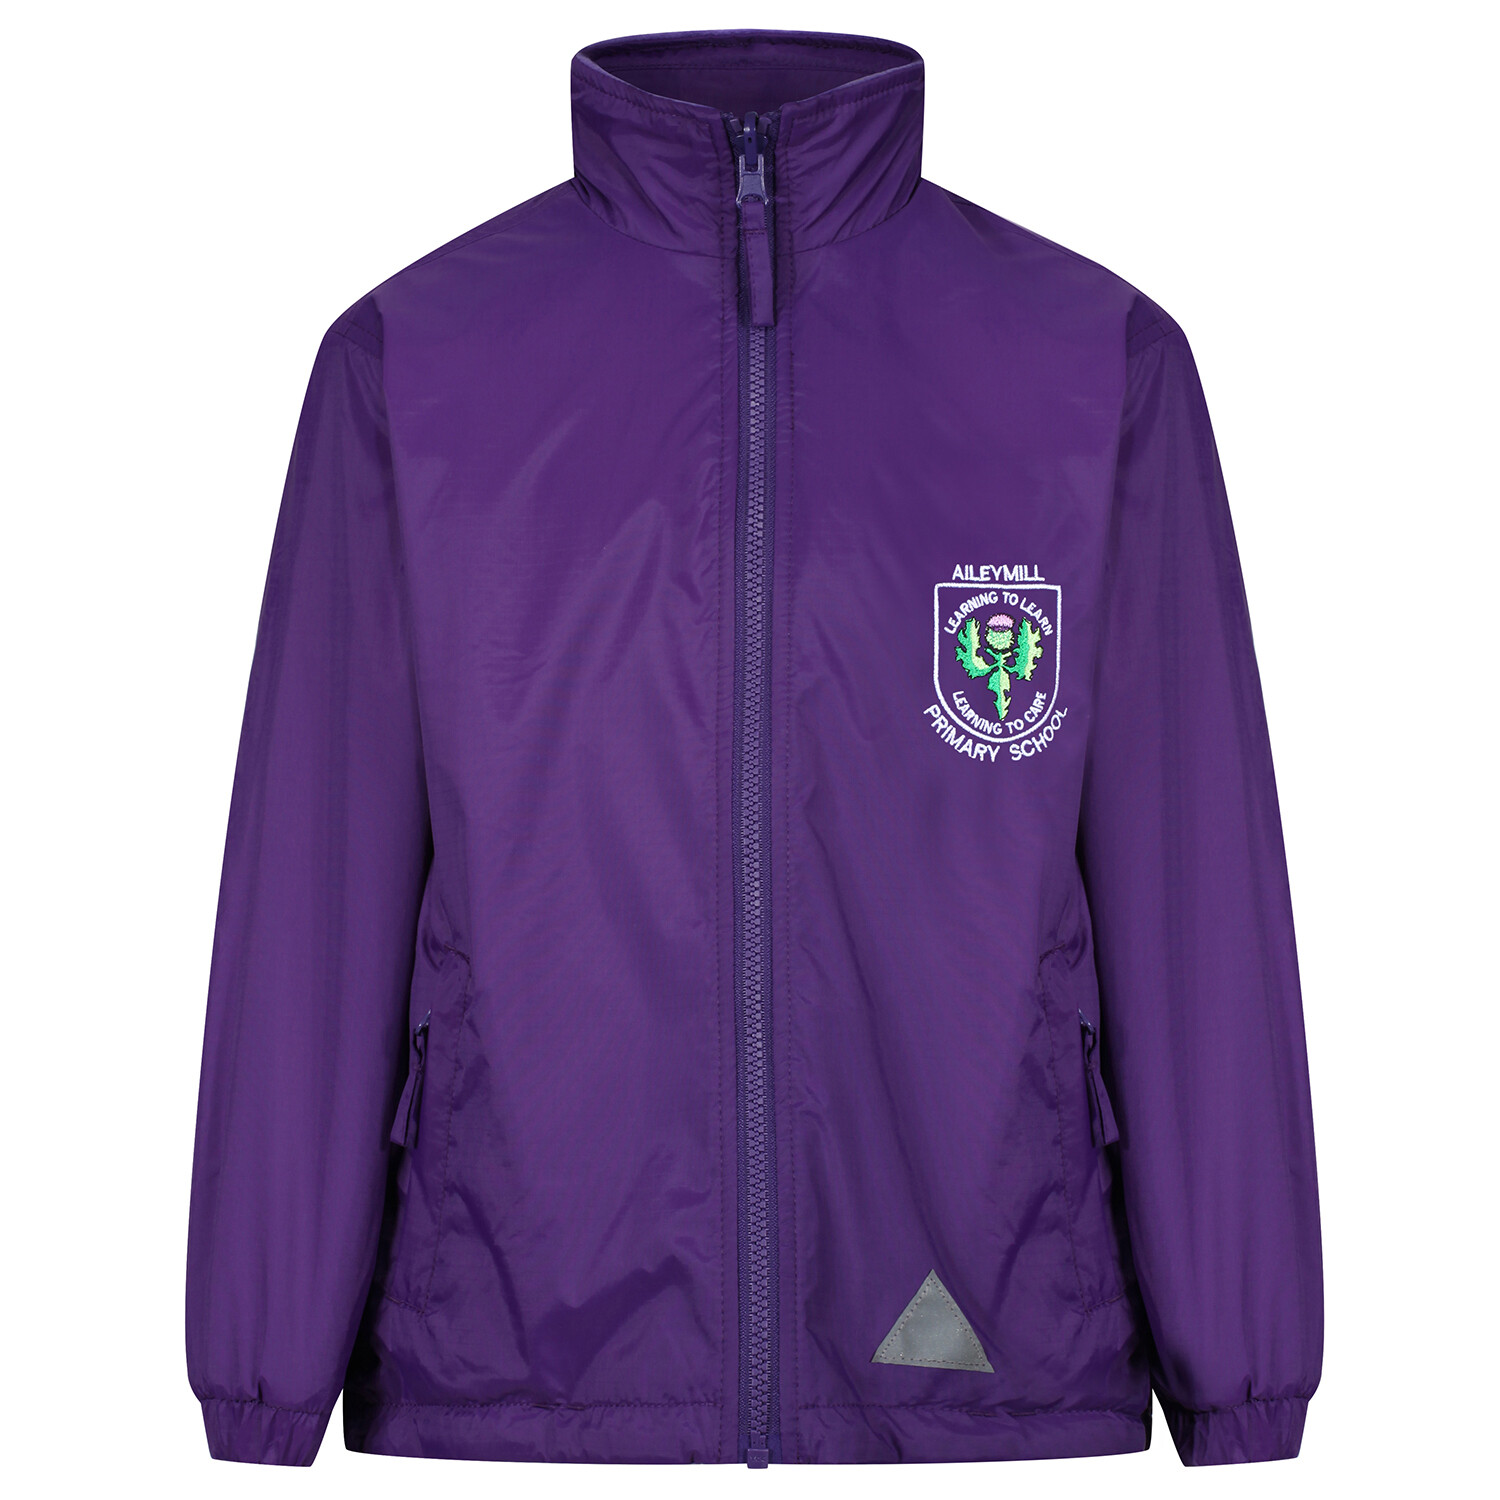 Aileymill Primary 'Lightweight' Rain Jacket (Fleece lined)